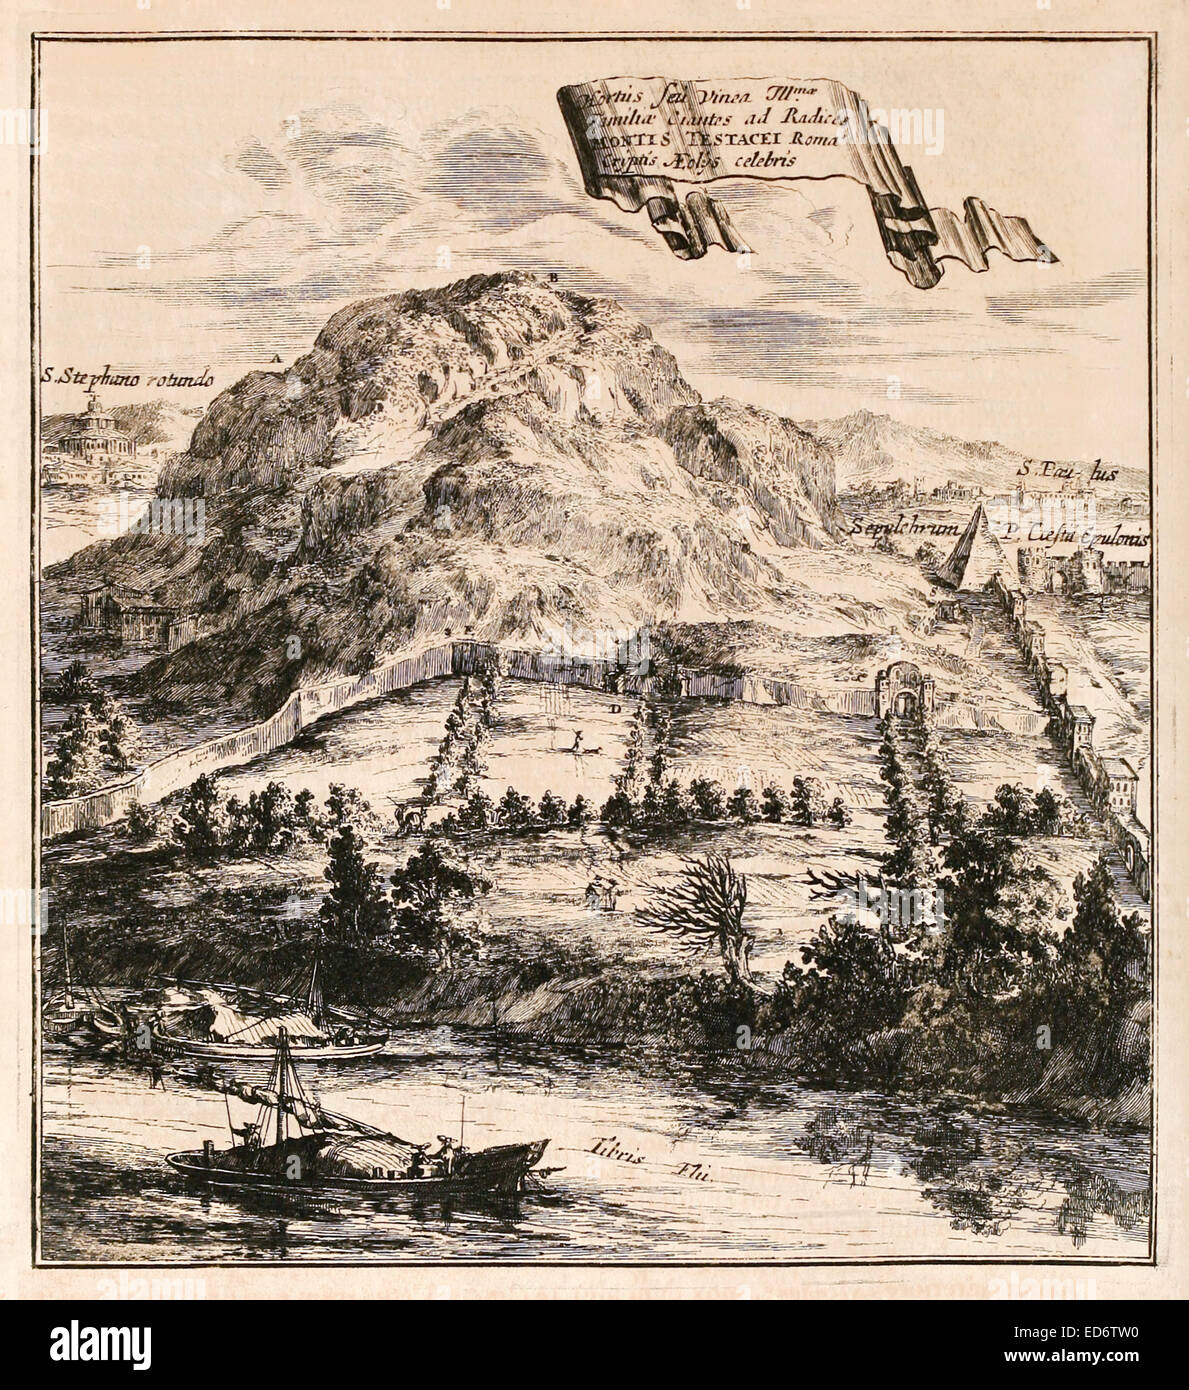 17th century illustration of Monte Testaccio, an artificial mound in Rome, Italy. and the Pyramid of Cestius. See Stock Photo